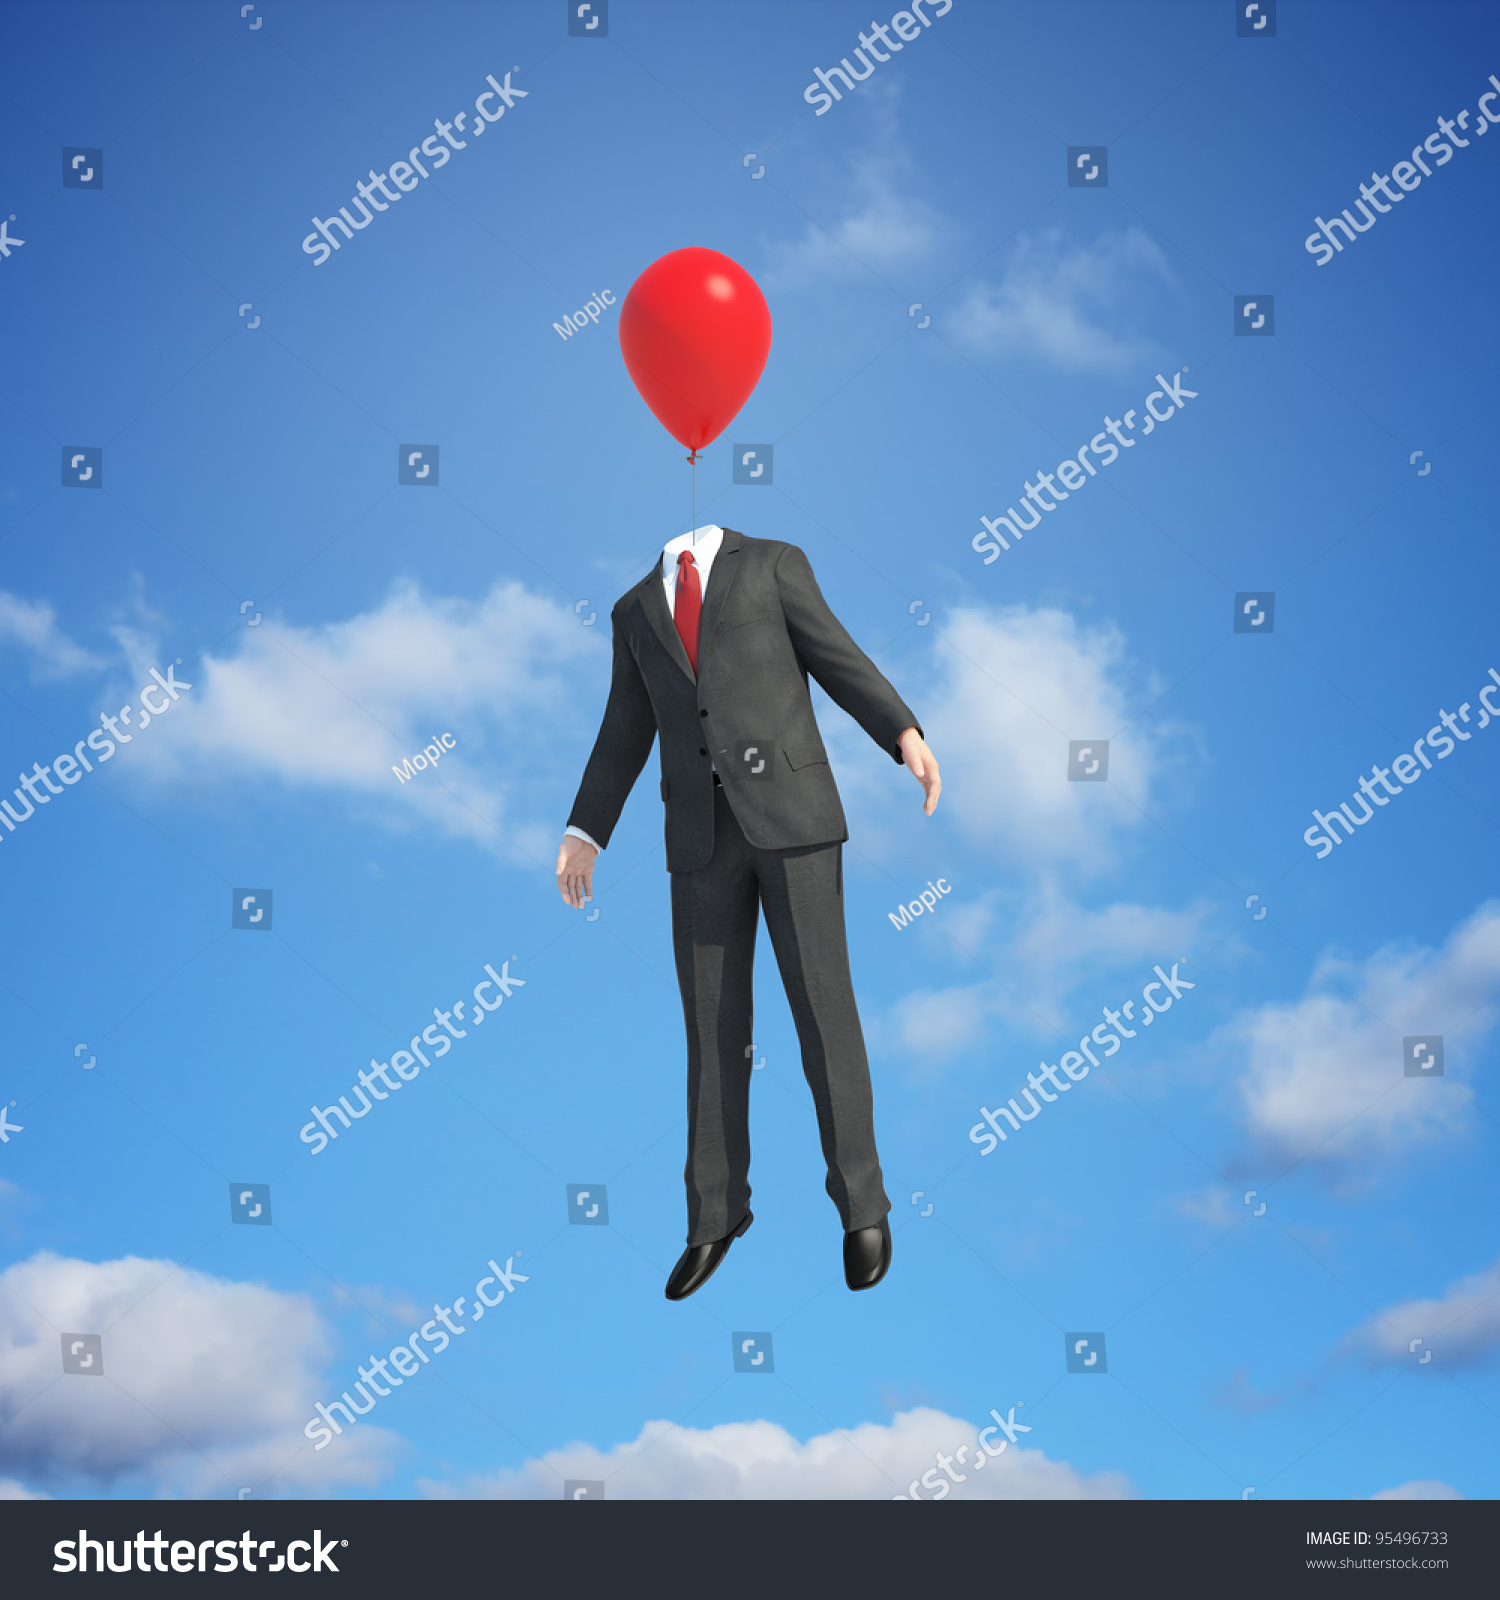 Image result for image of person flying high